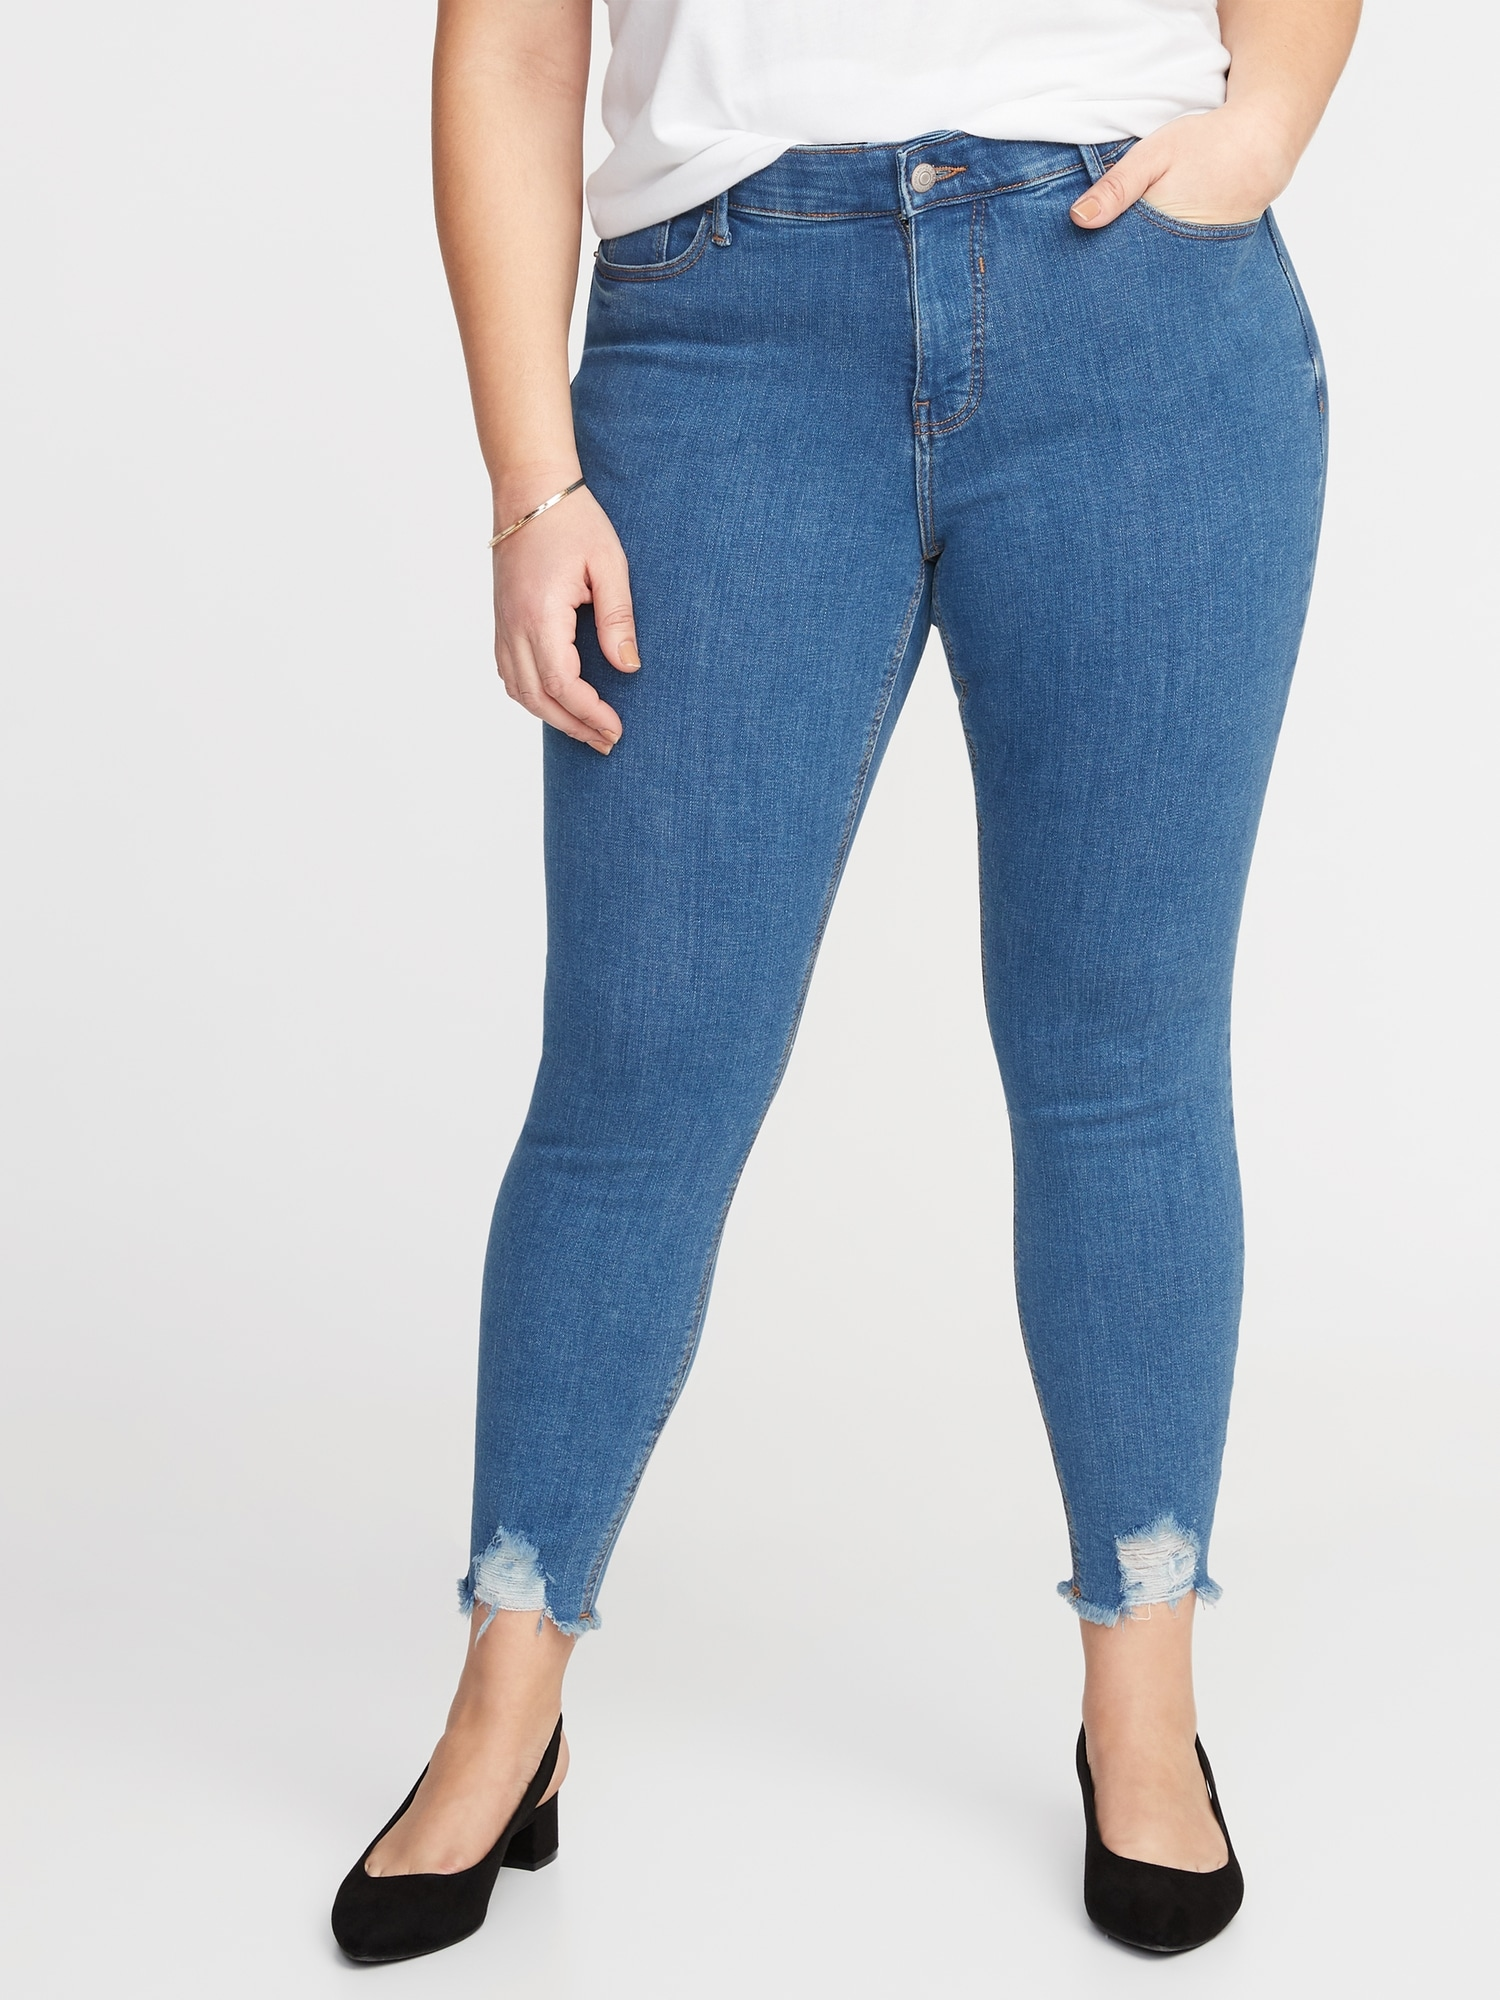 eaf45c8da92 High-Rise Secret-Slim Pockets + Waistband Rockstar Plus-Size Super Skinny  Ankle Jeans